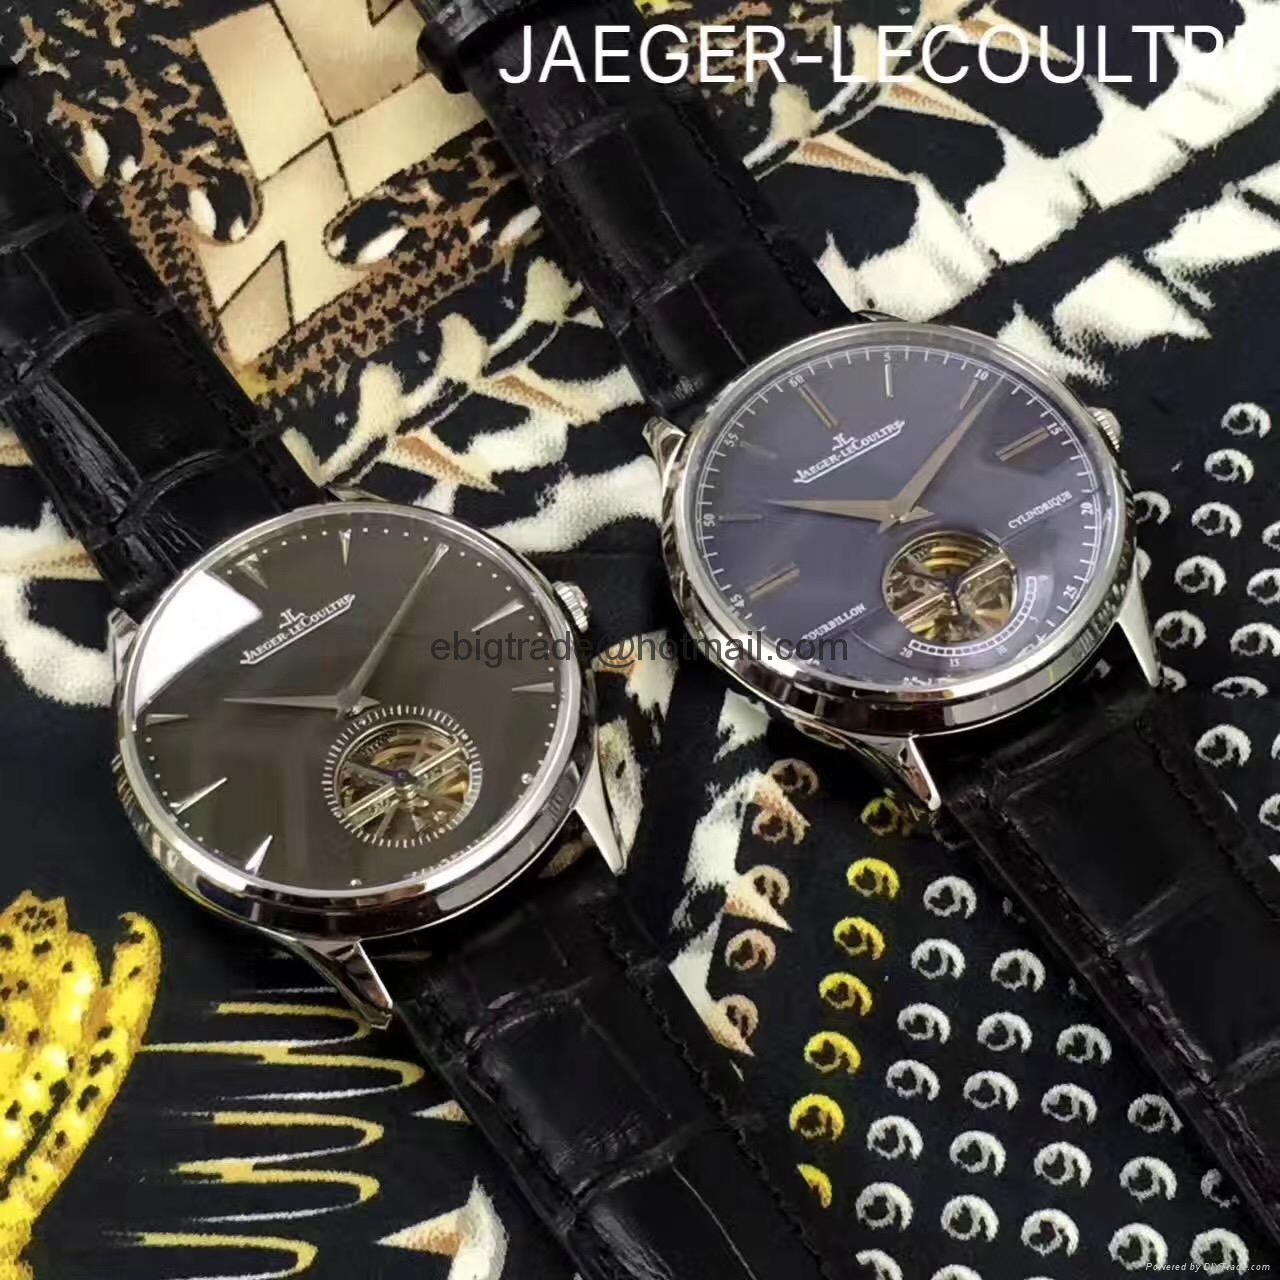 vintage Jeager Lecoultre Watches